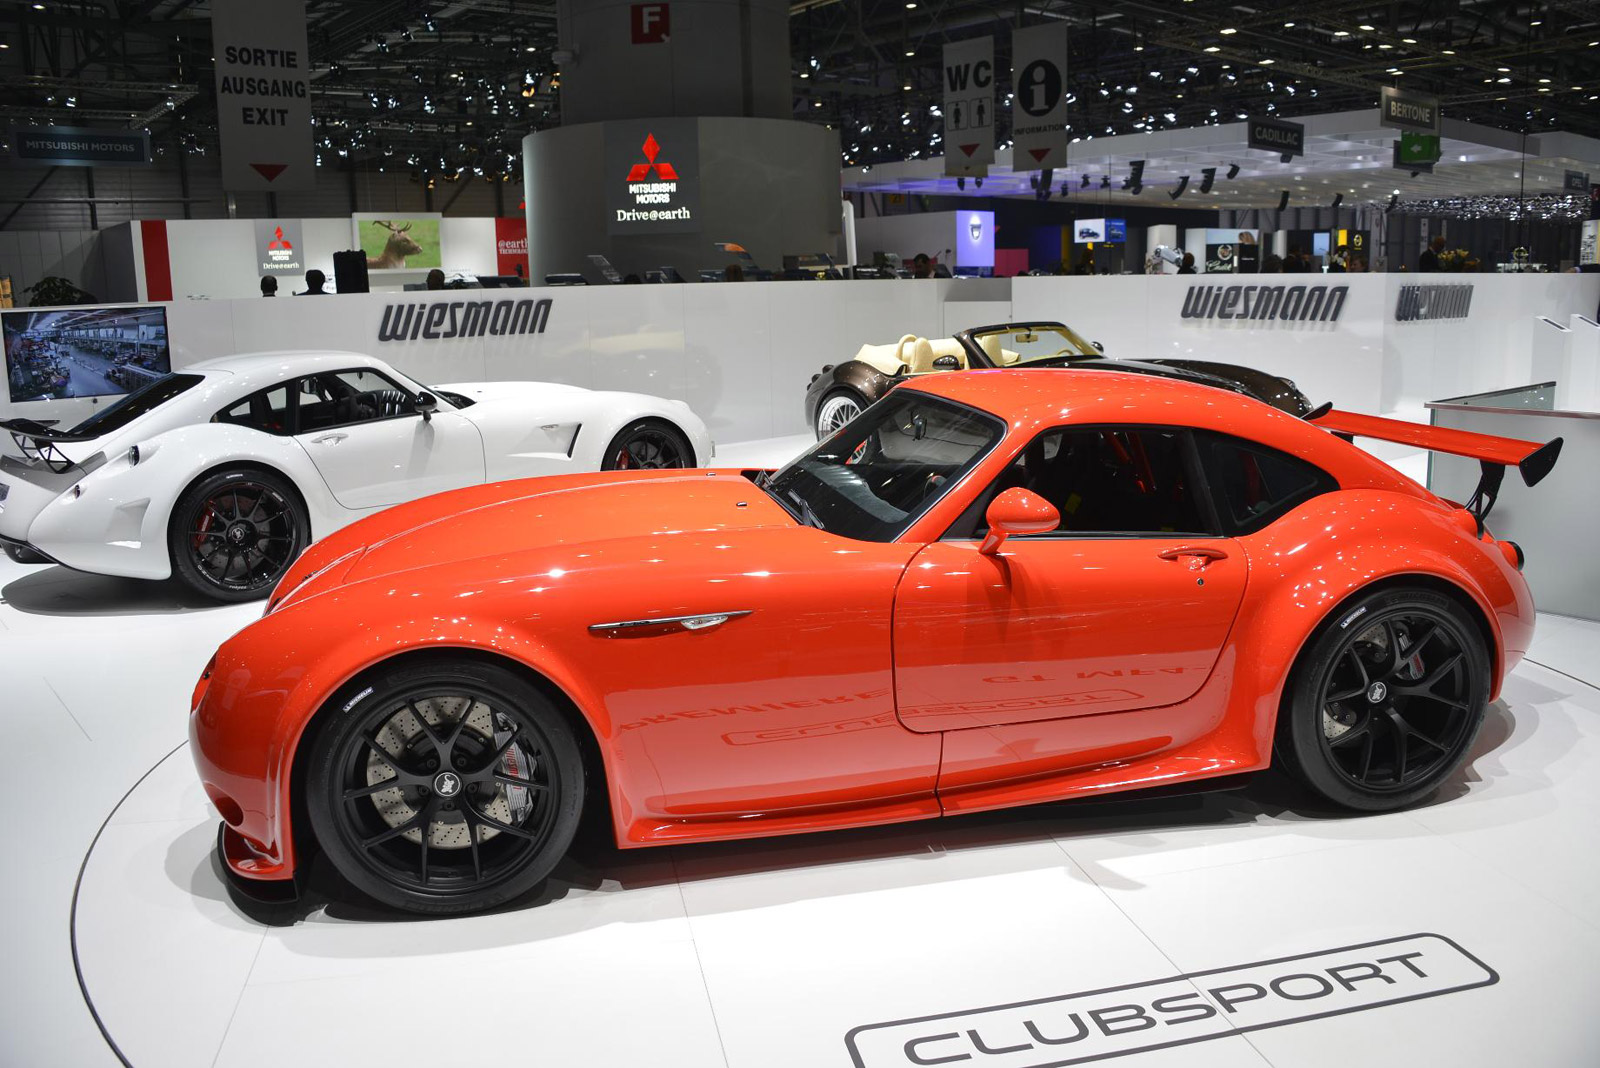 wiesmann gt mf4 cs debuts at 2013 geneva motor show. Black Bedroom Furniture Sets. Home Design Ideas